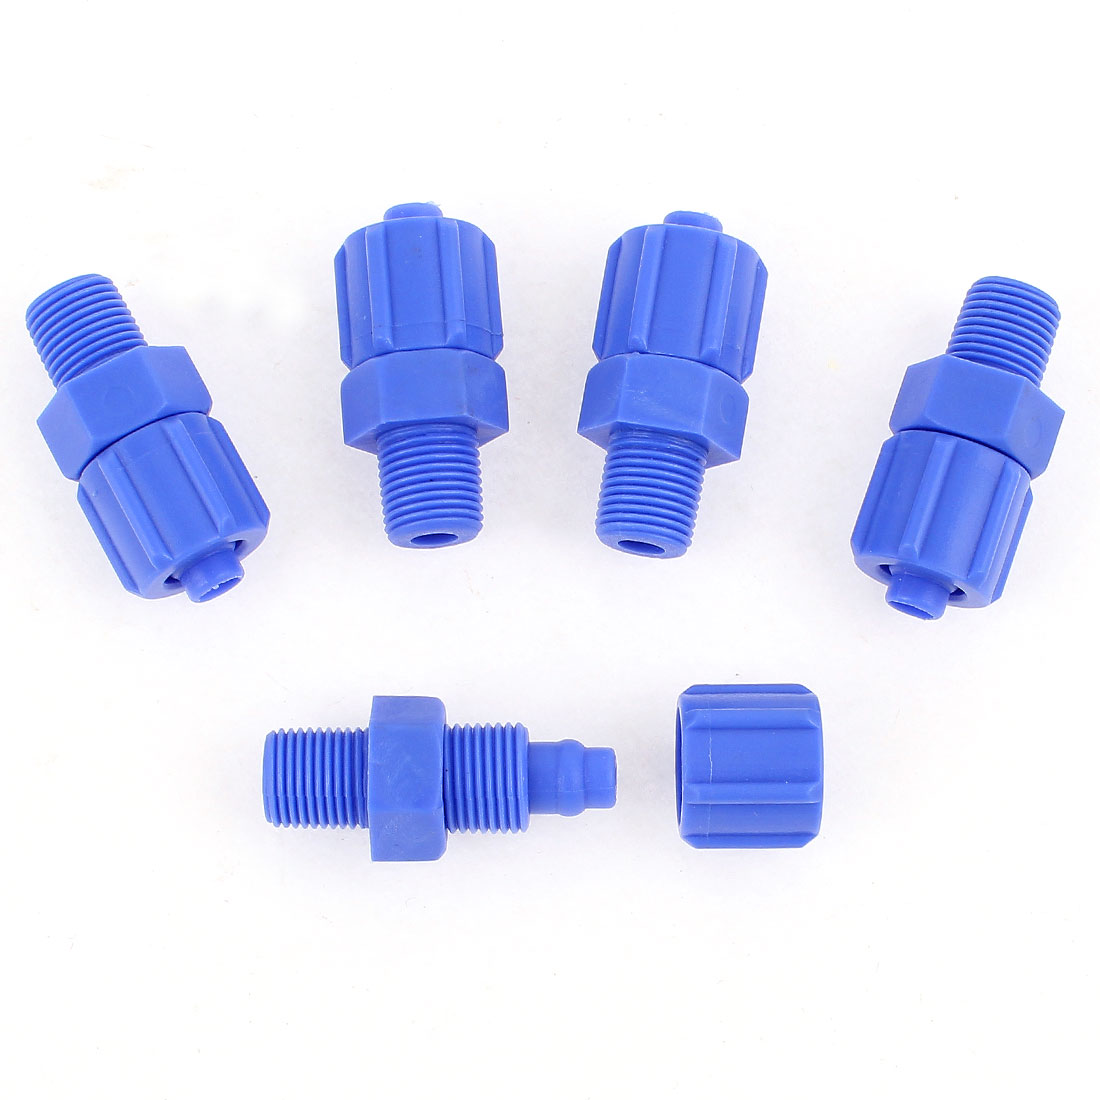 5Pcs 1/8BSP Male Thread Air Pneumatic Quick Fitting Straight Connector 8mm OD